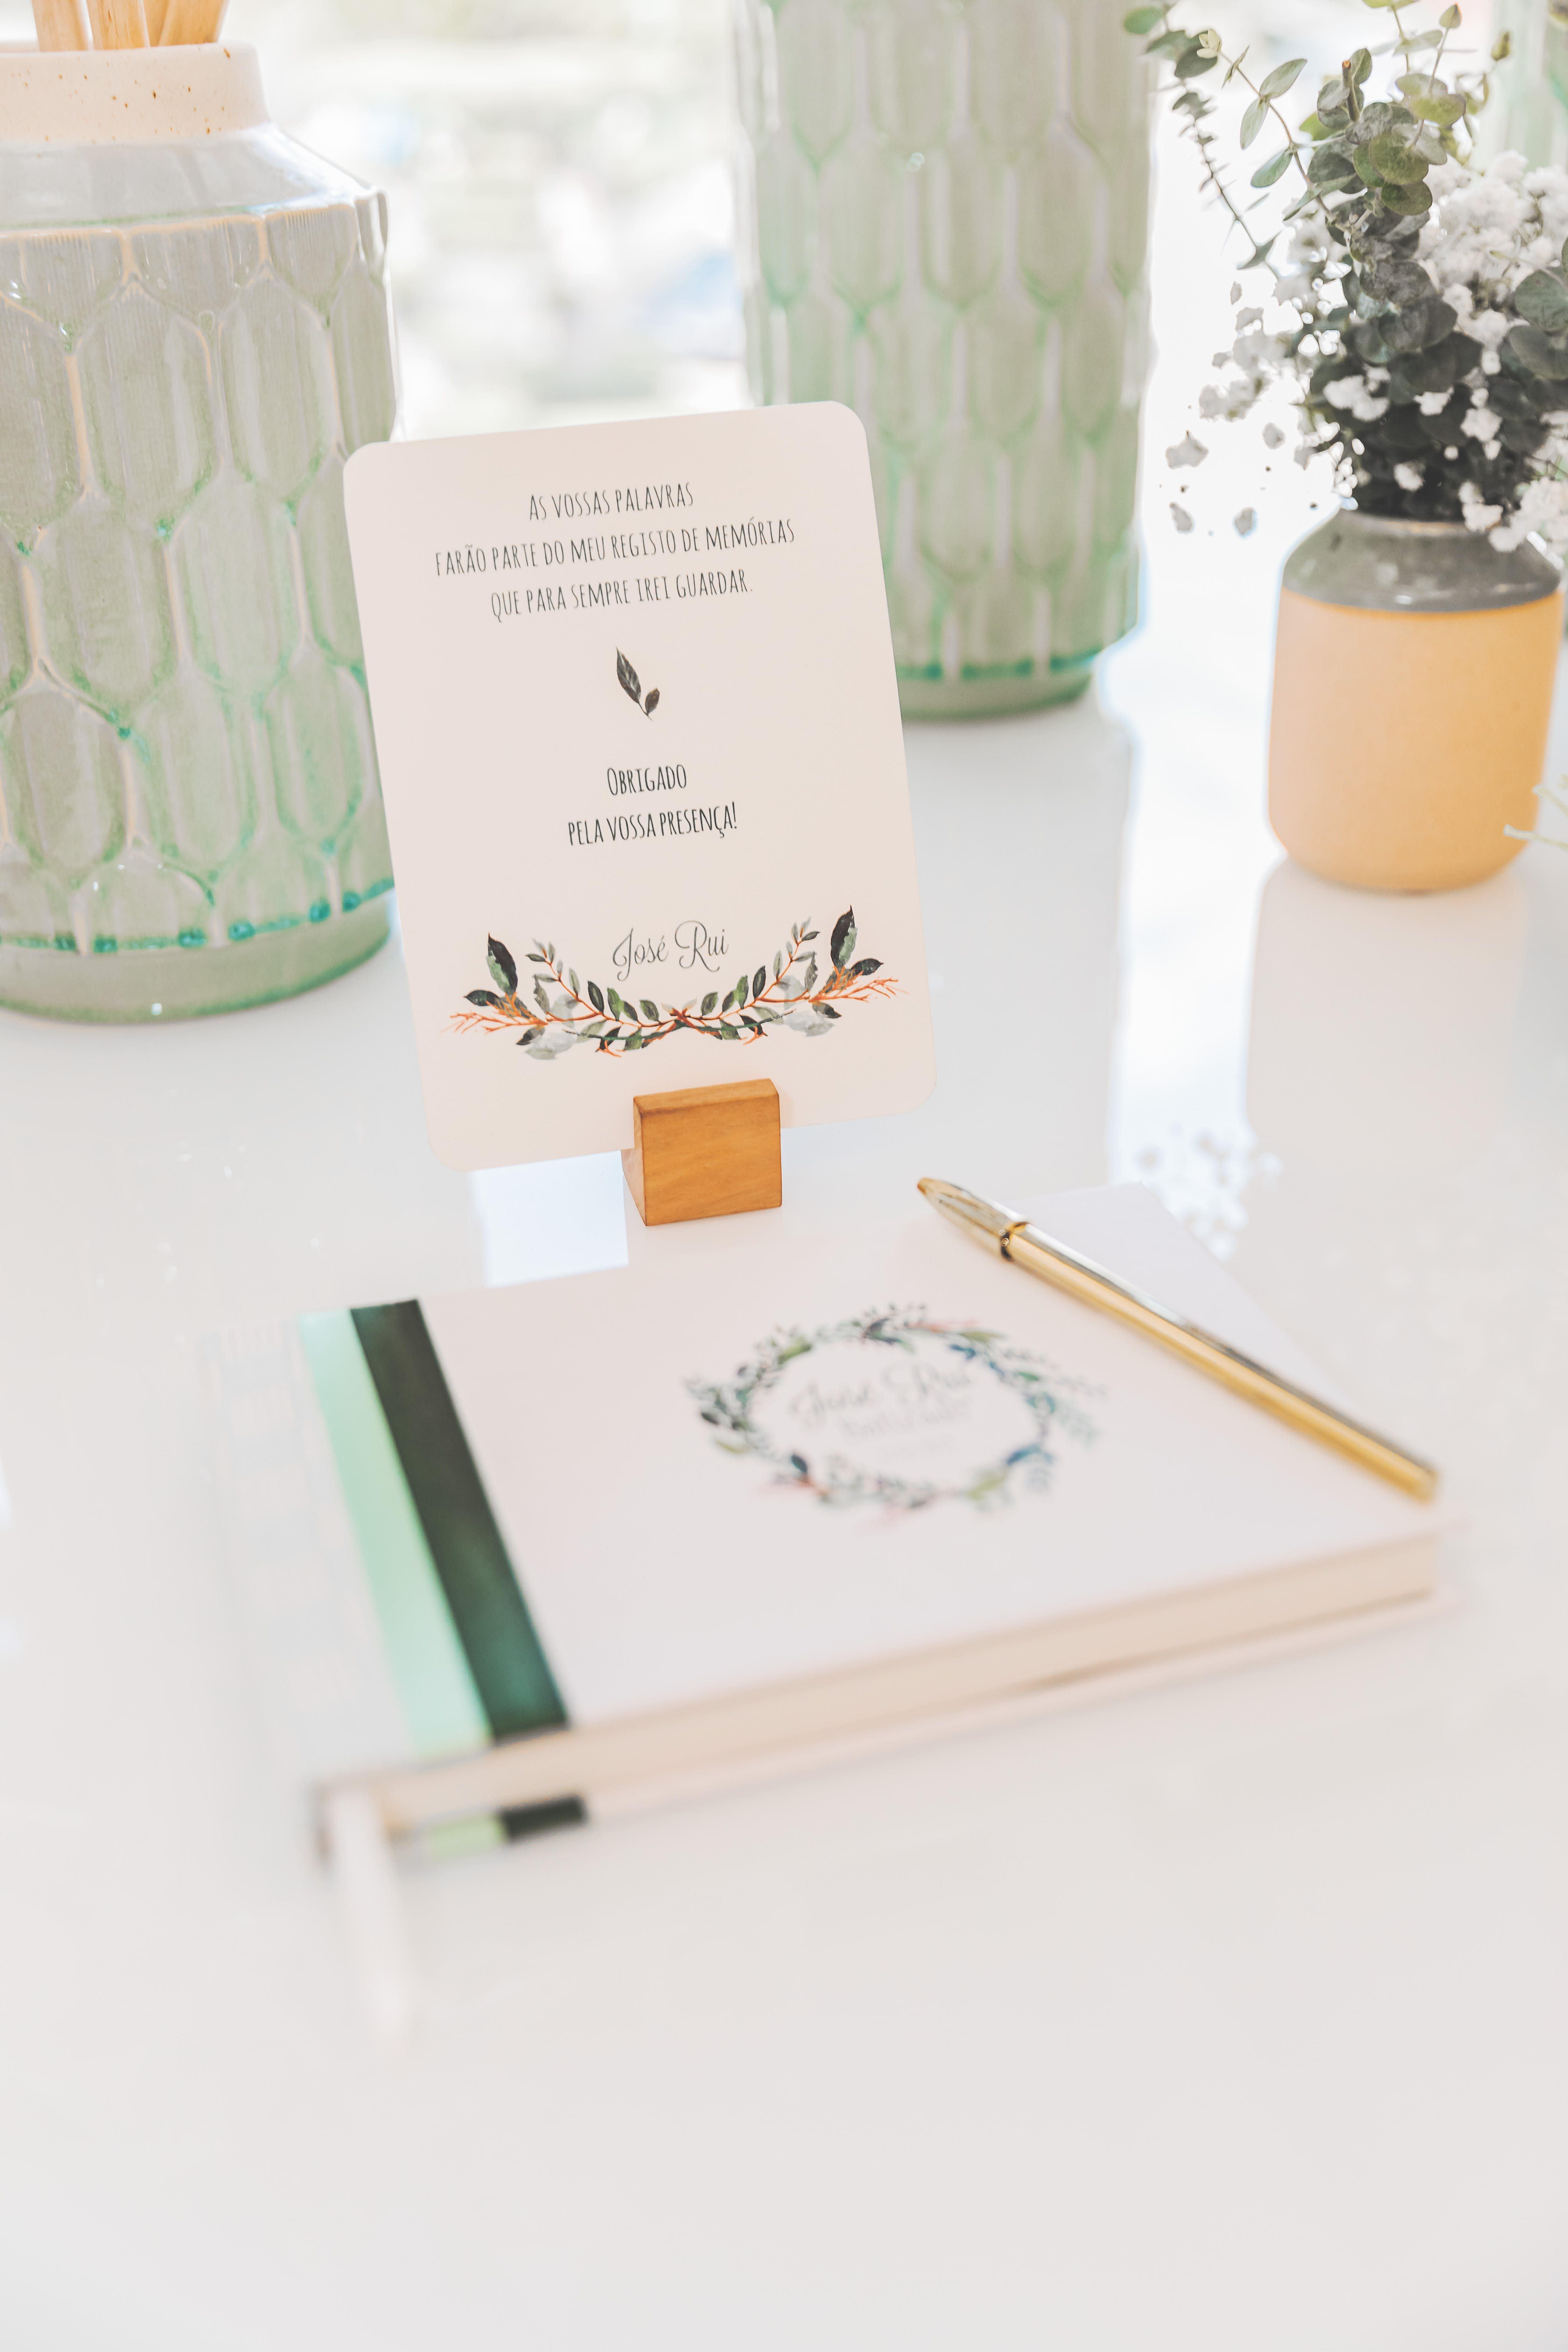 White Book on Table